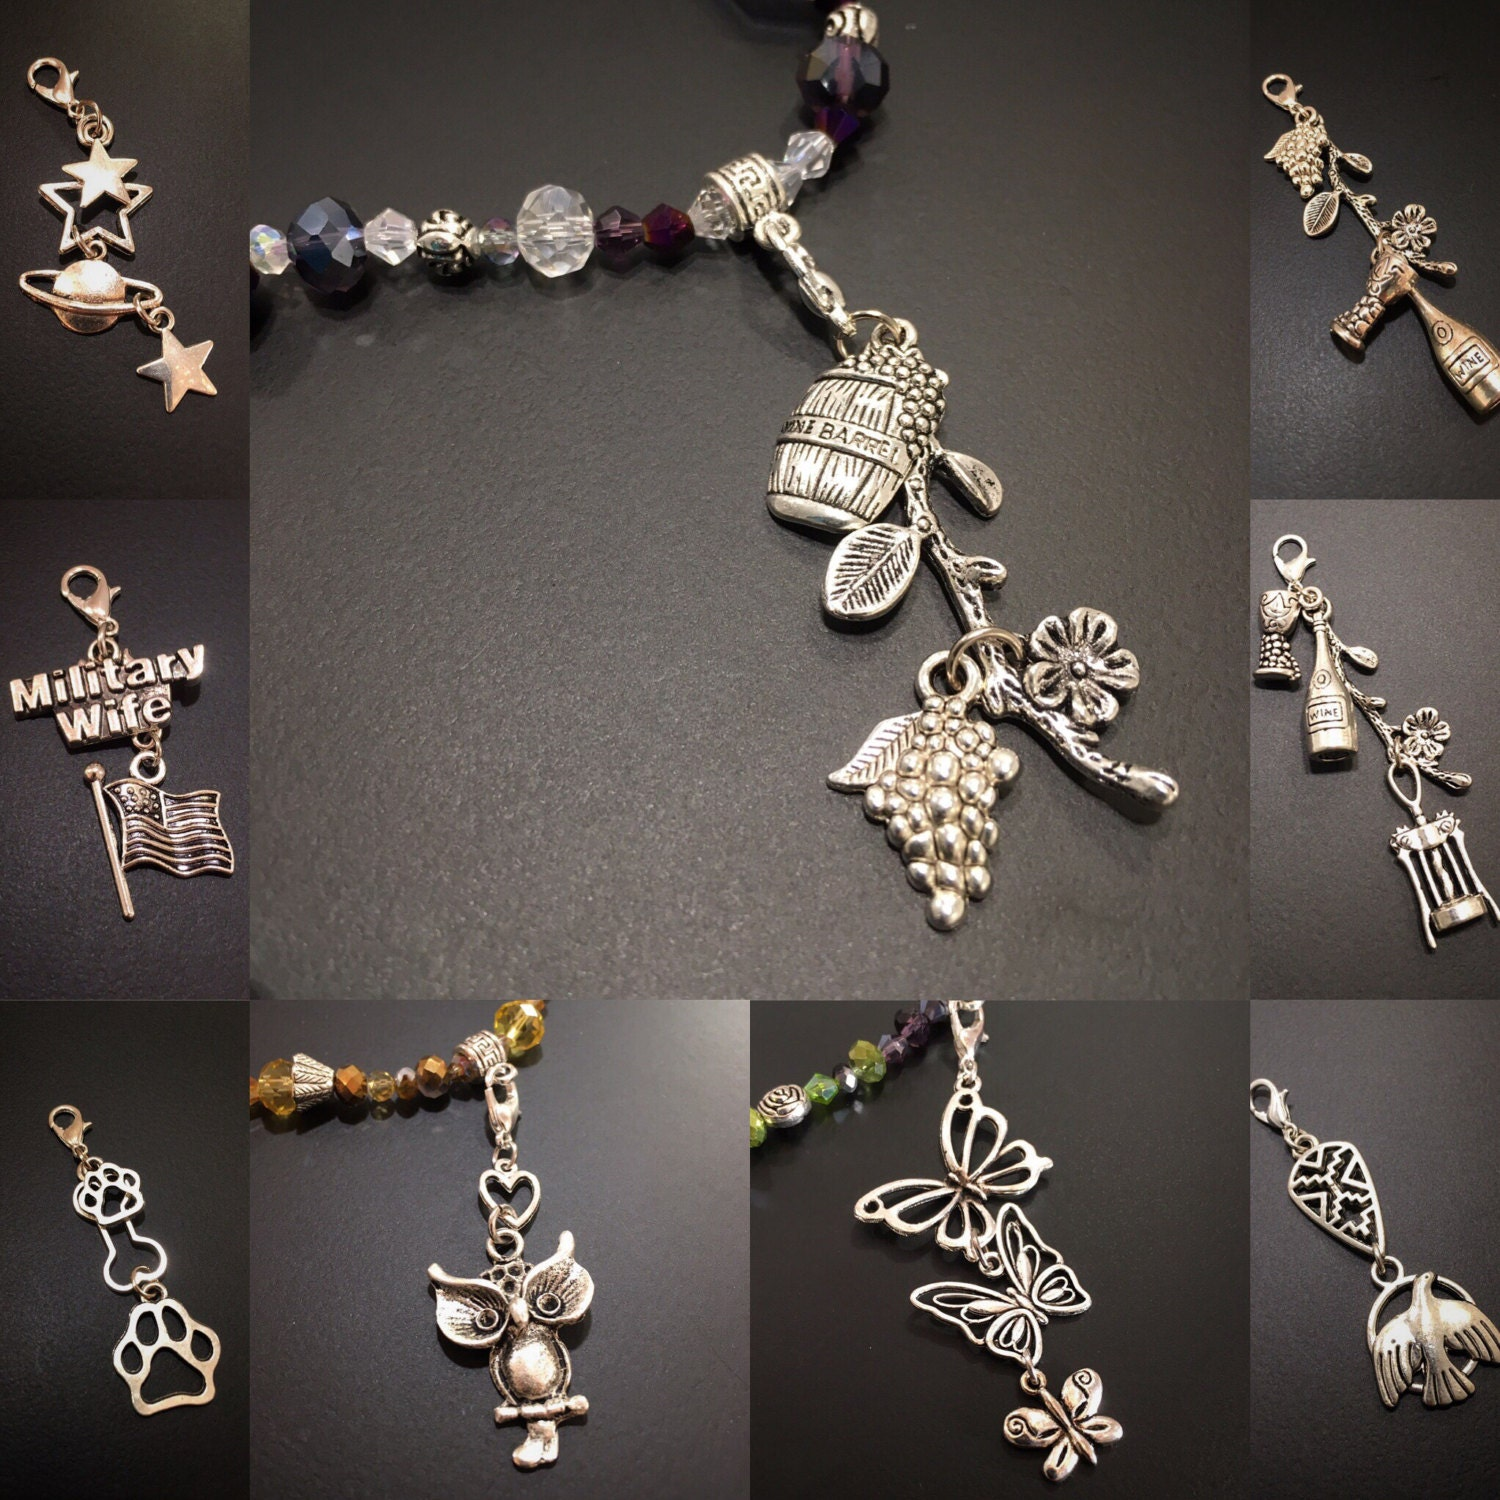 Soccer Charms Charm accessories Charms for bracelet charms for